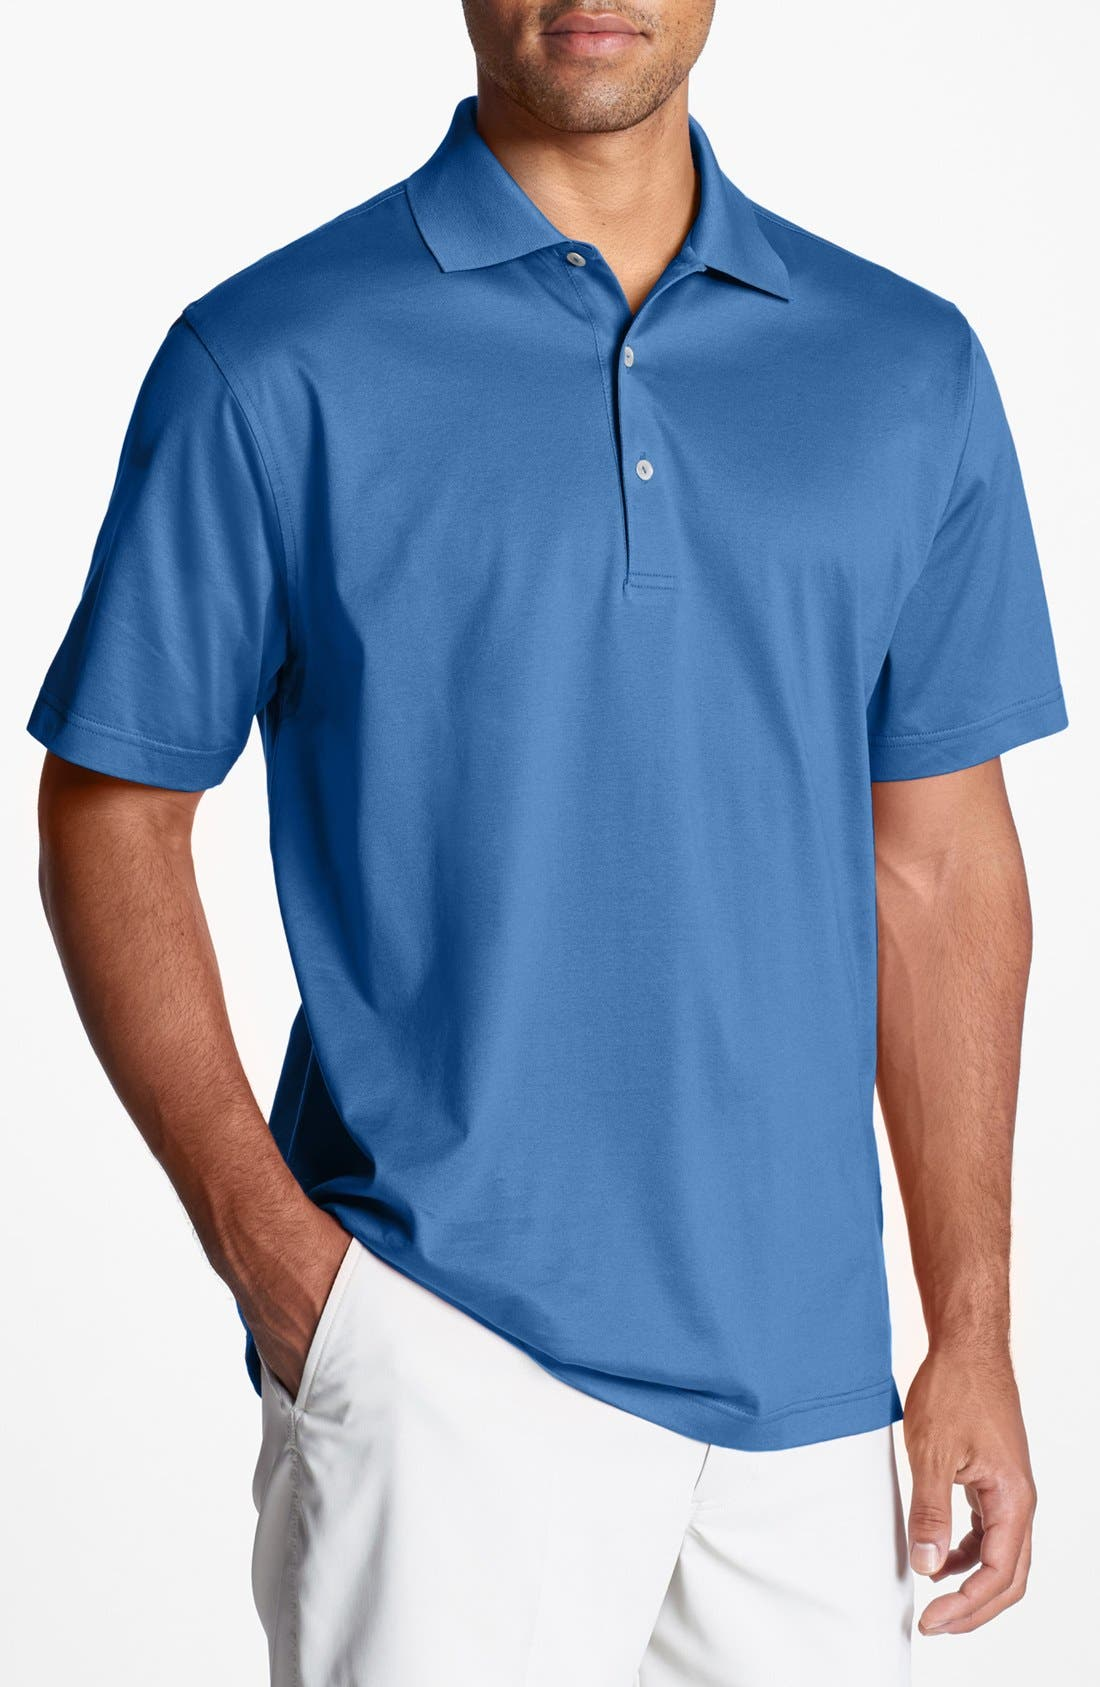 Main Image - Peter Millar Solid Knit Polo